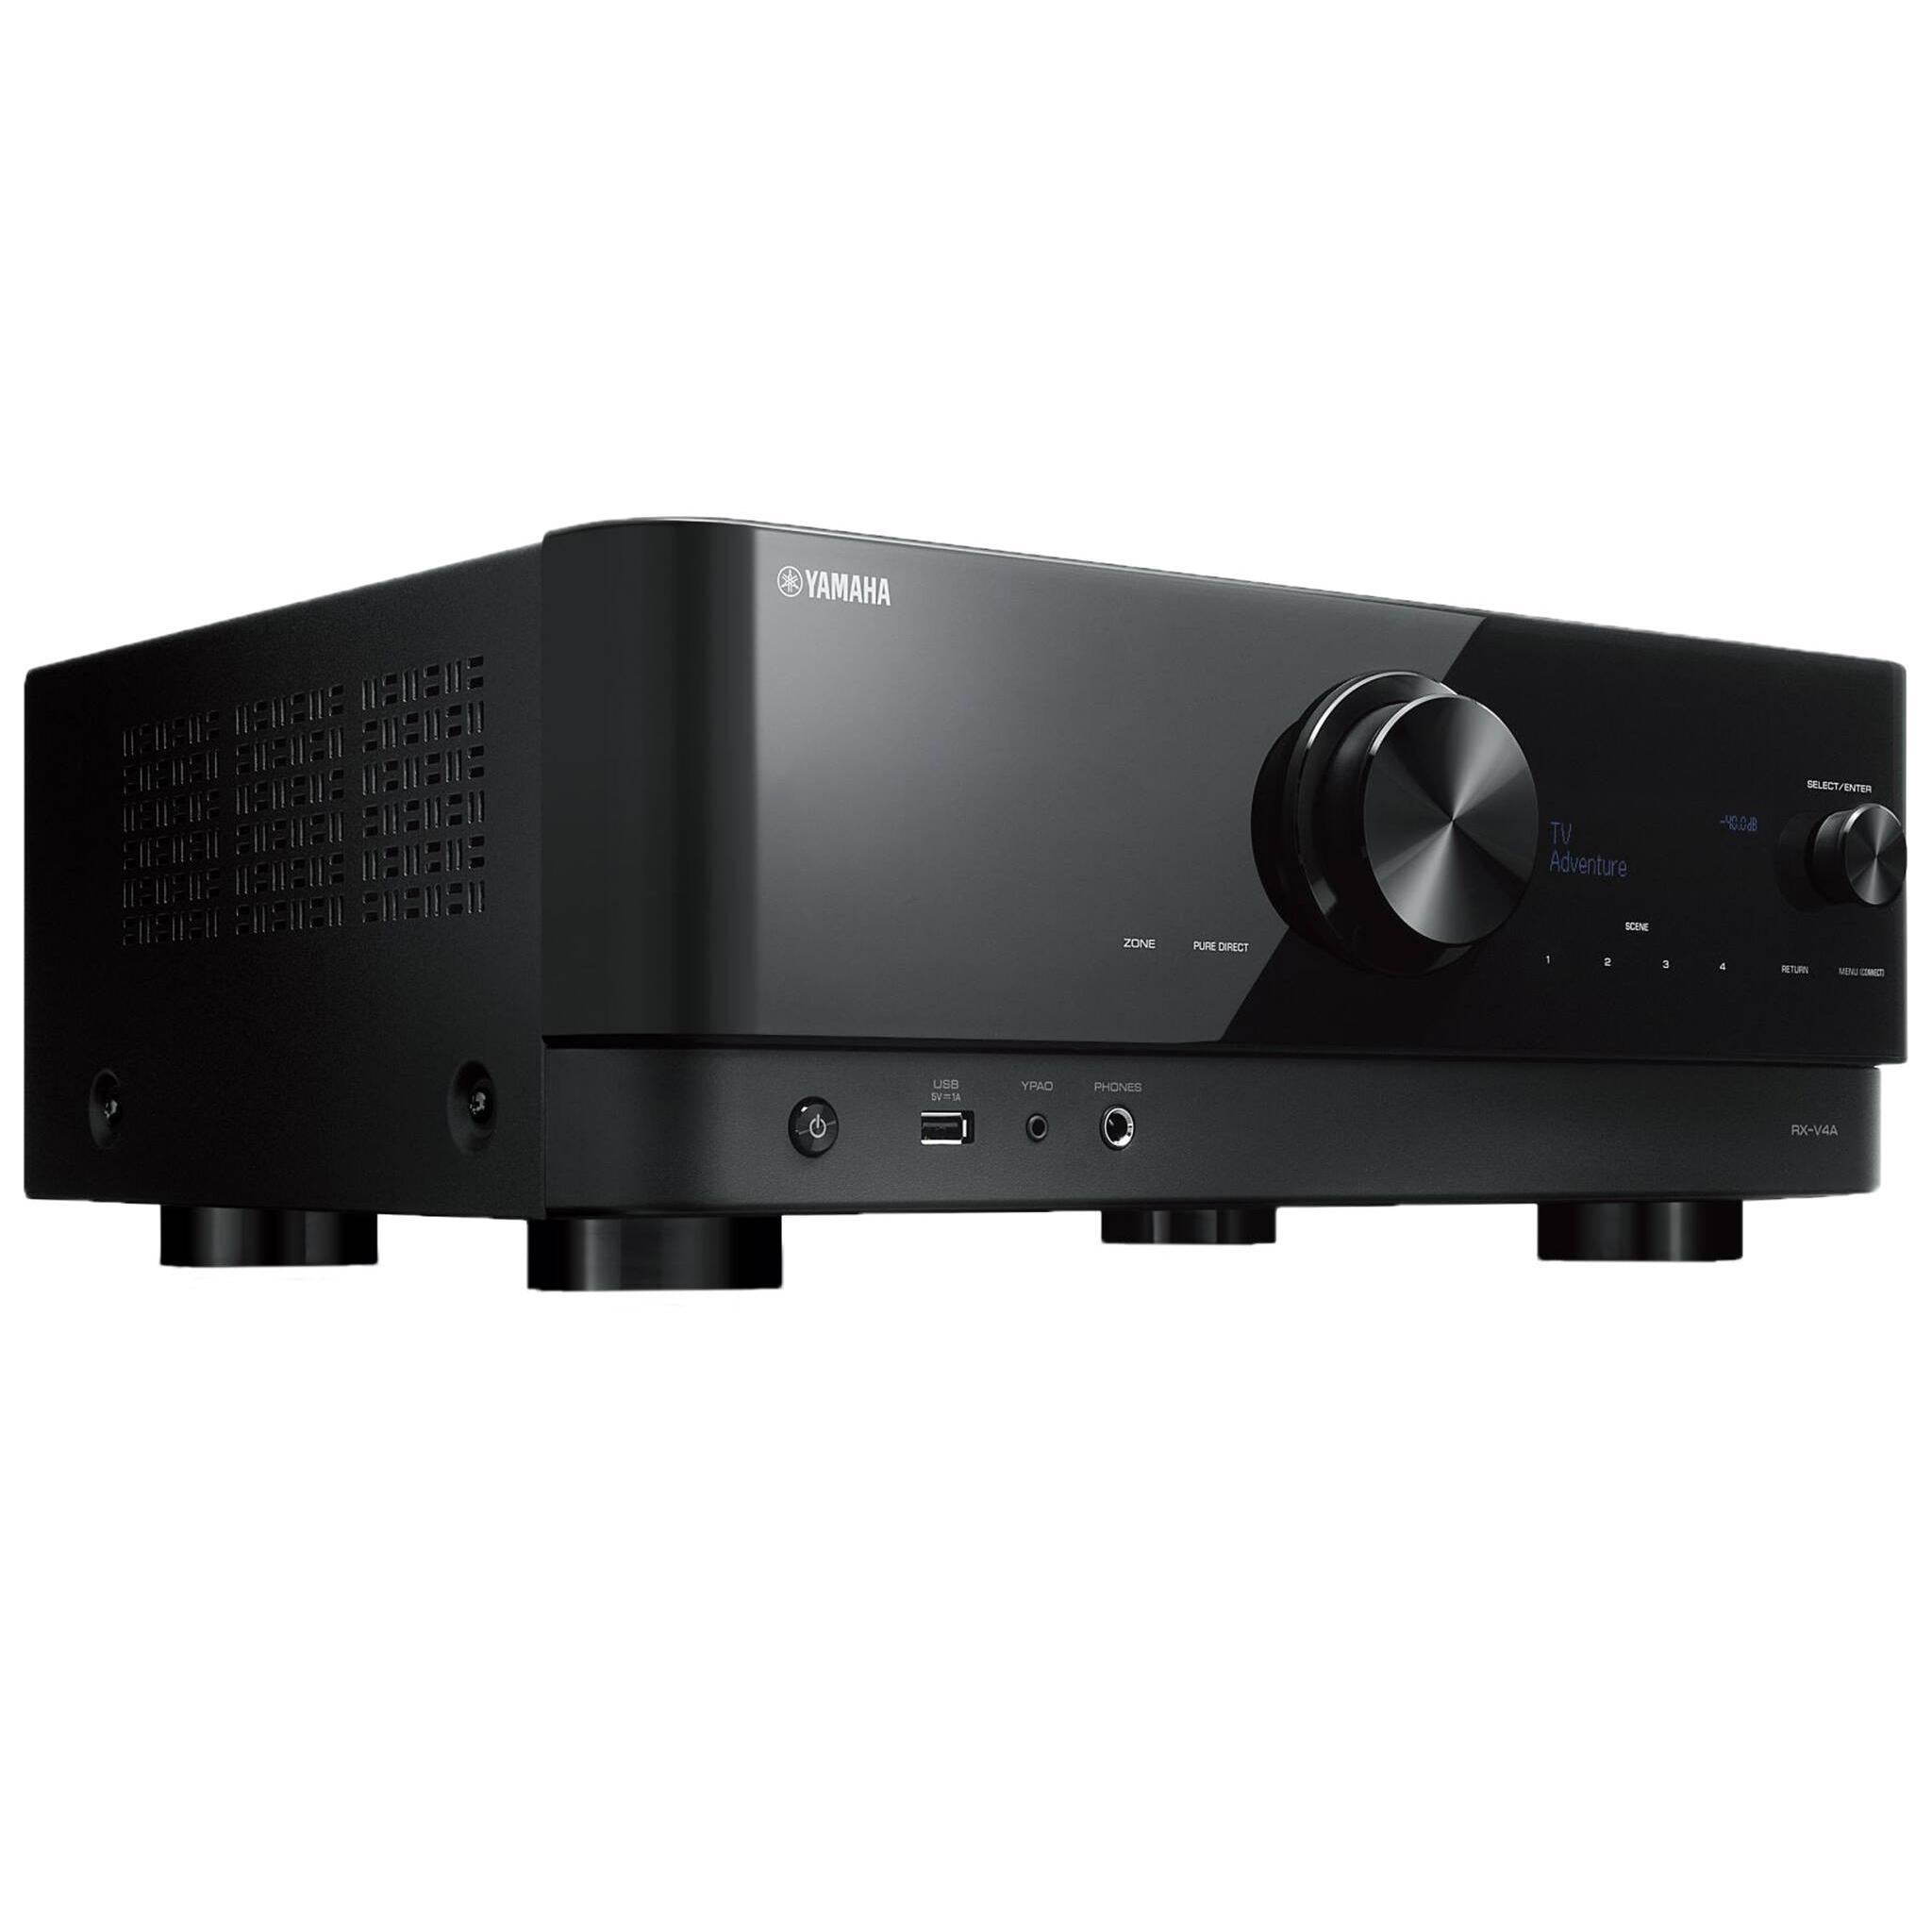 Yamaha RX-V4A - 5.2 Channel AV Receiver, Yamaha, AV Receiver - AVStore.in